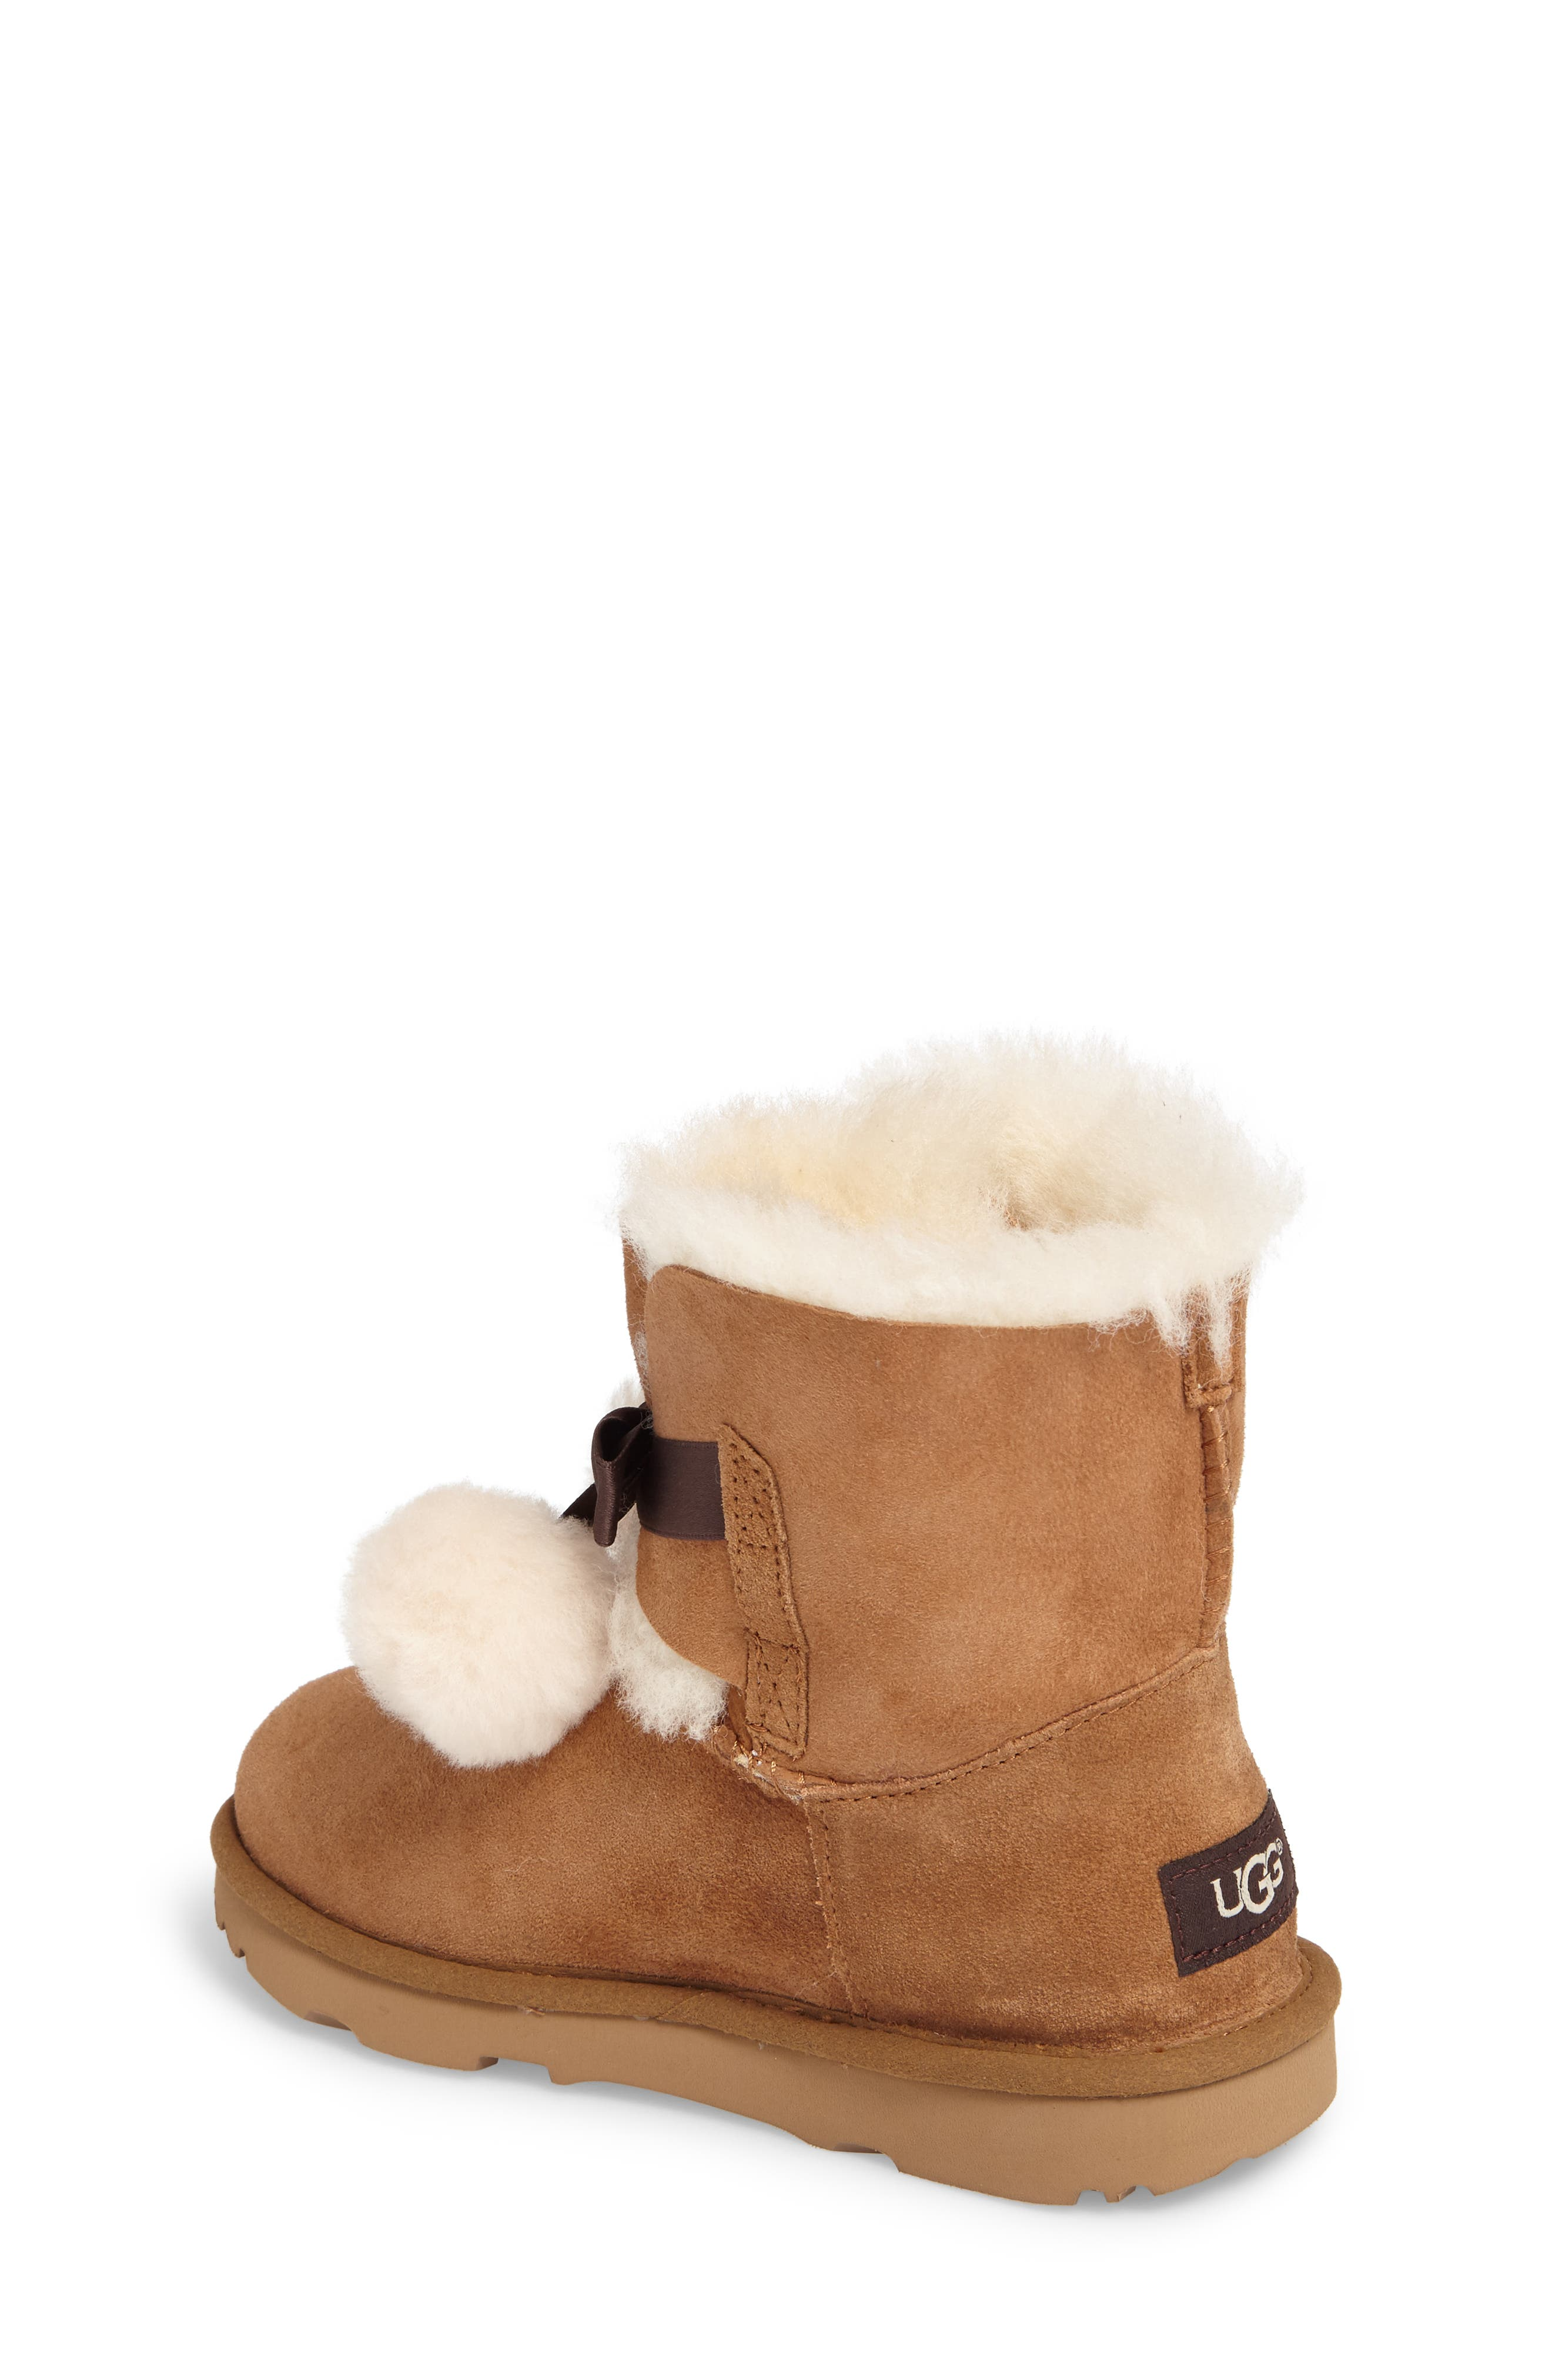 UGG<SUP>®</SUP>, Gita Water-Resistant Genuine Shearling Pom Boot, Alternate thumbnail 2, color, CHESTNUT